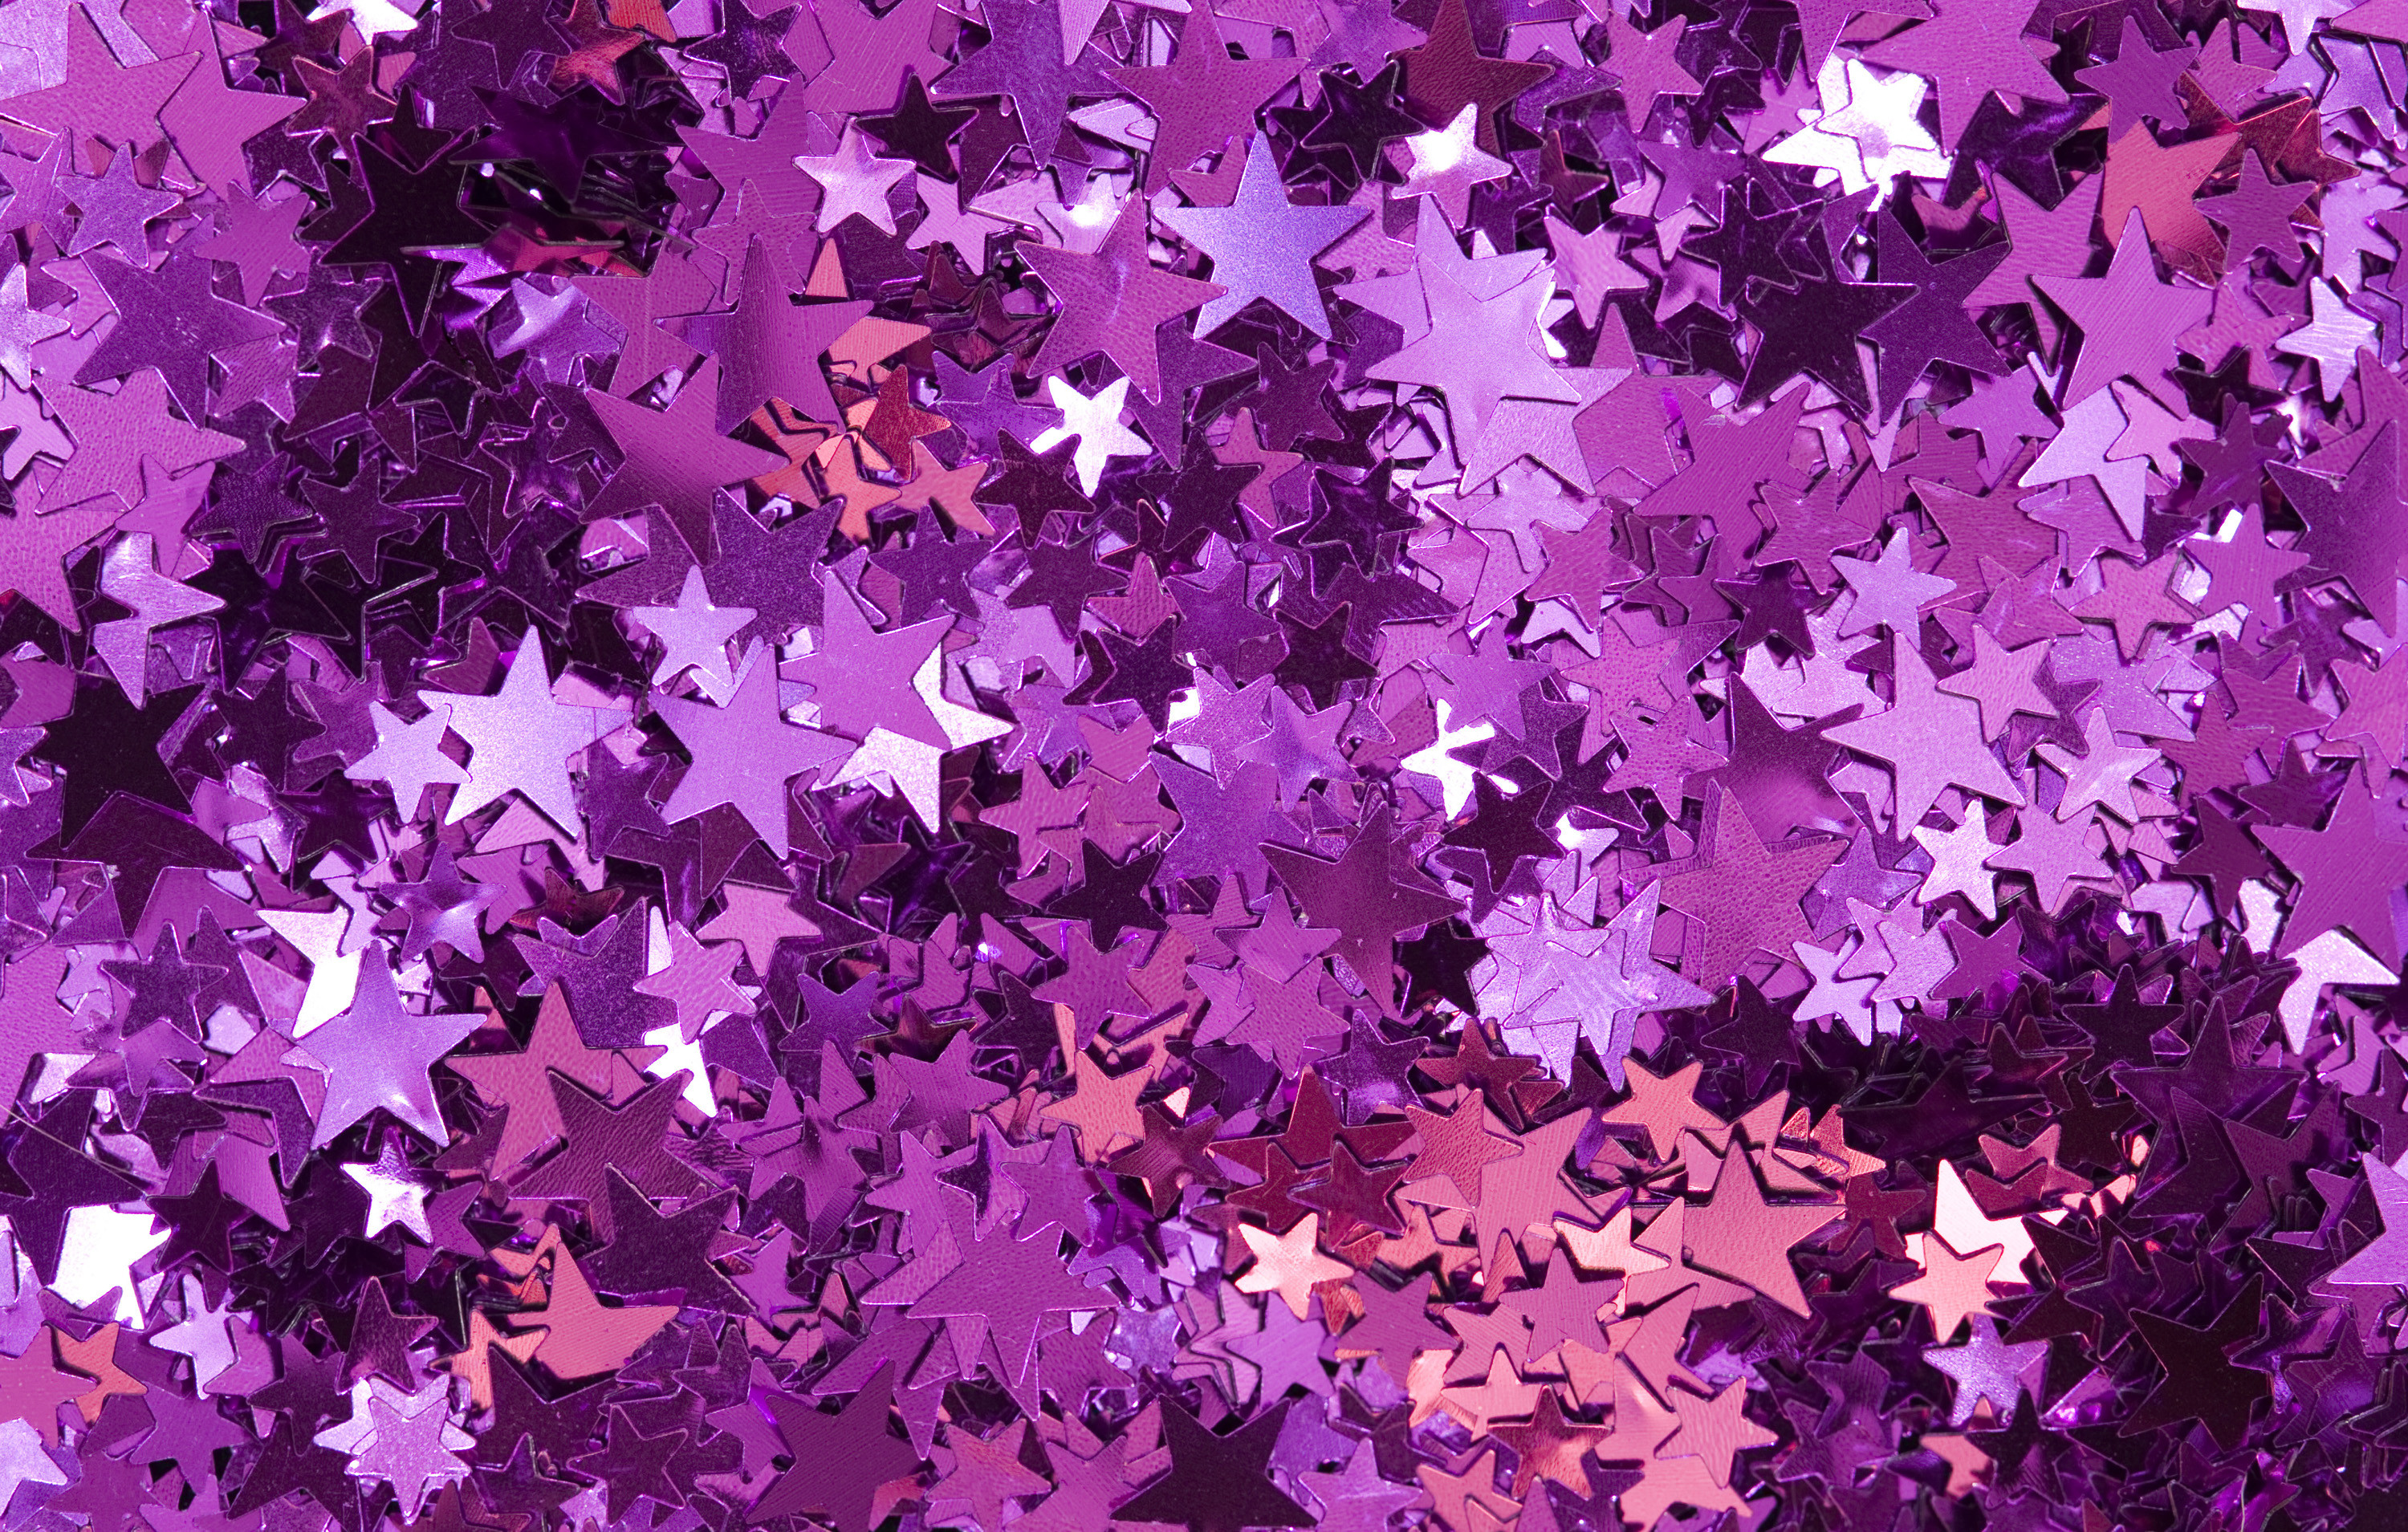 Res: 3000x1909, a colorful pink backdrop of metallic confetti star shapes